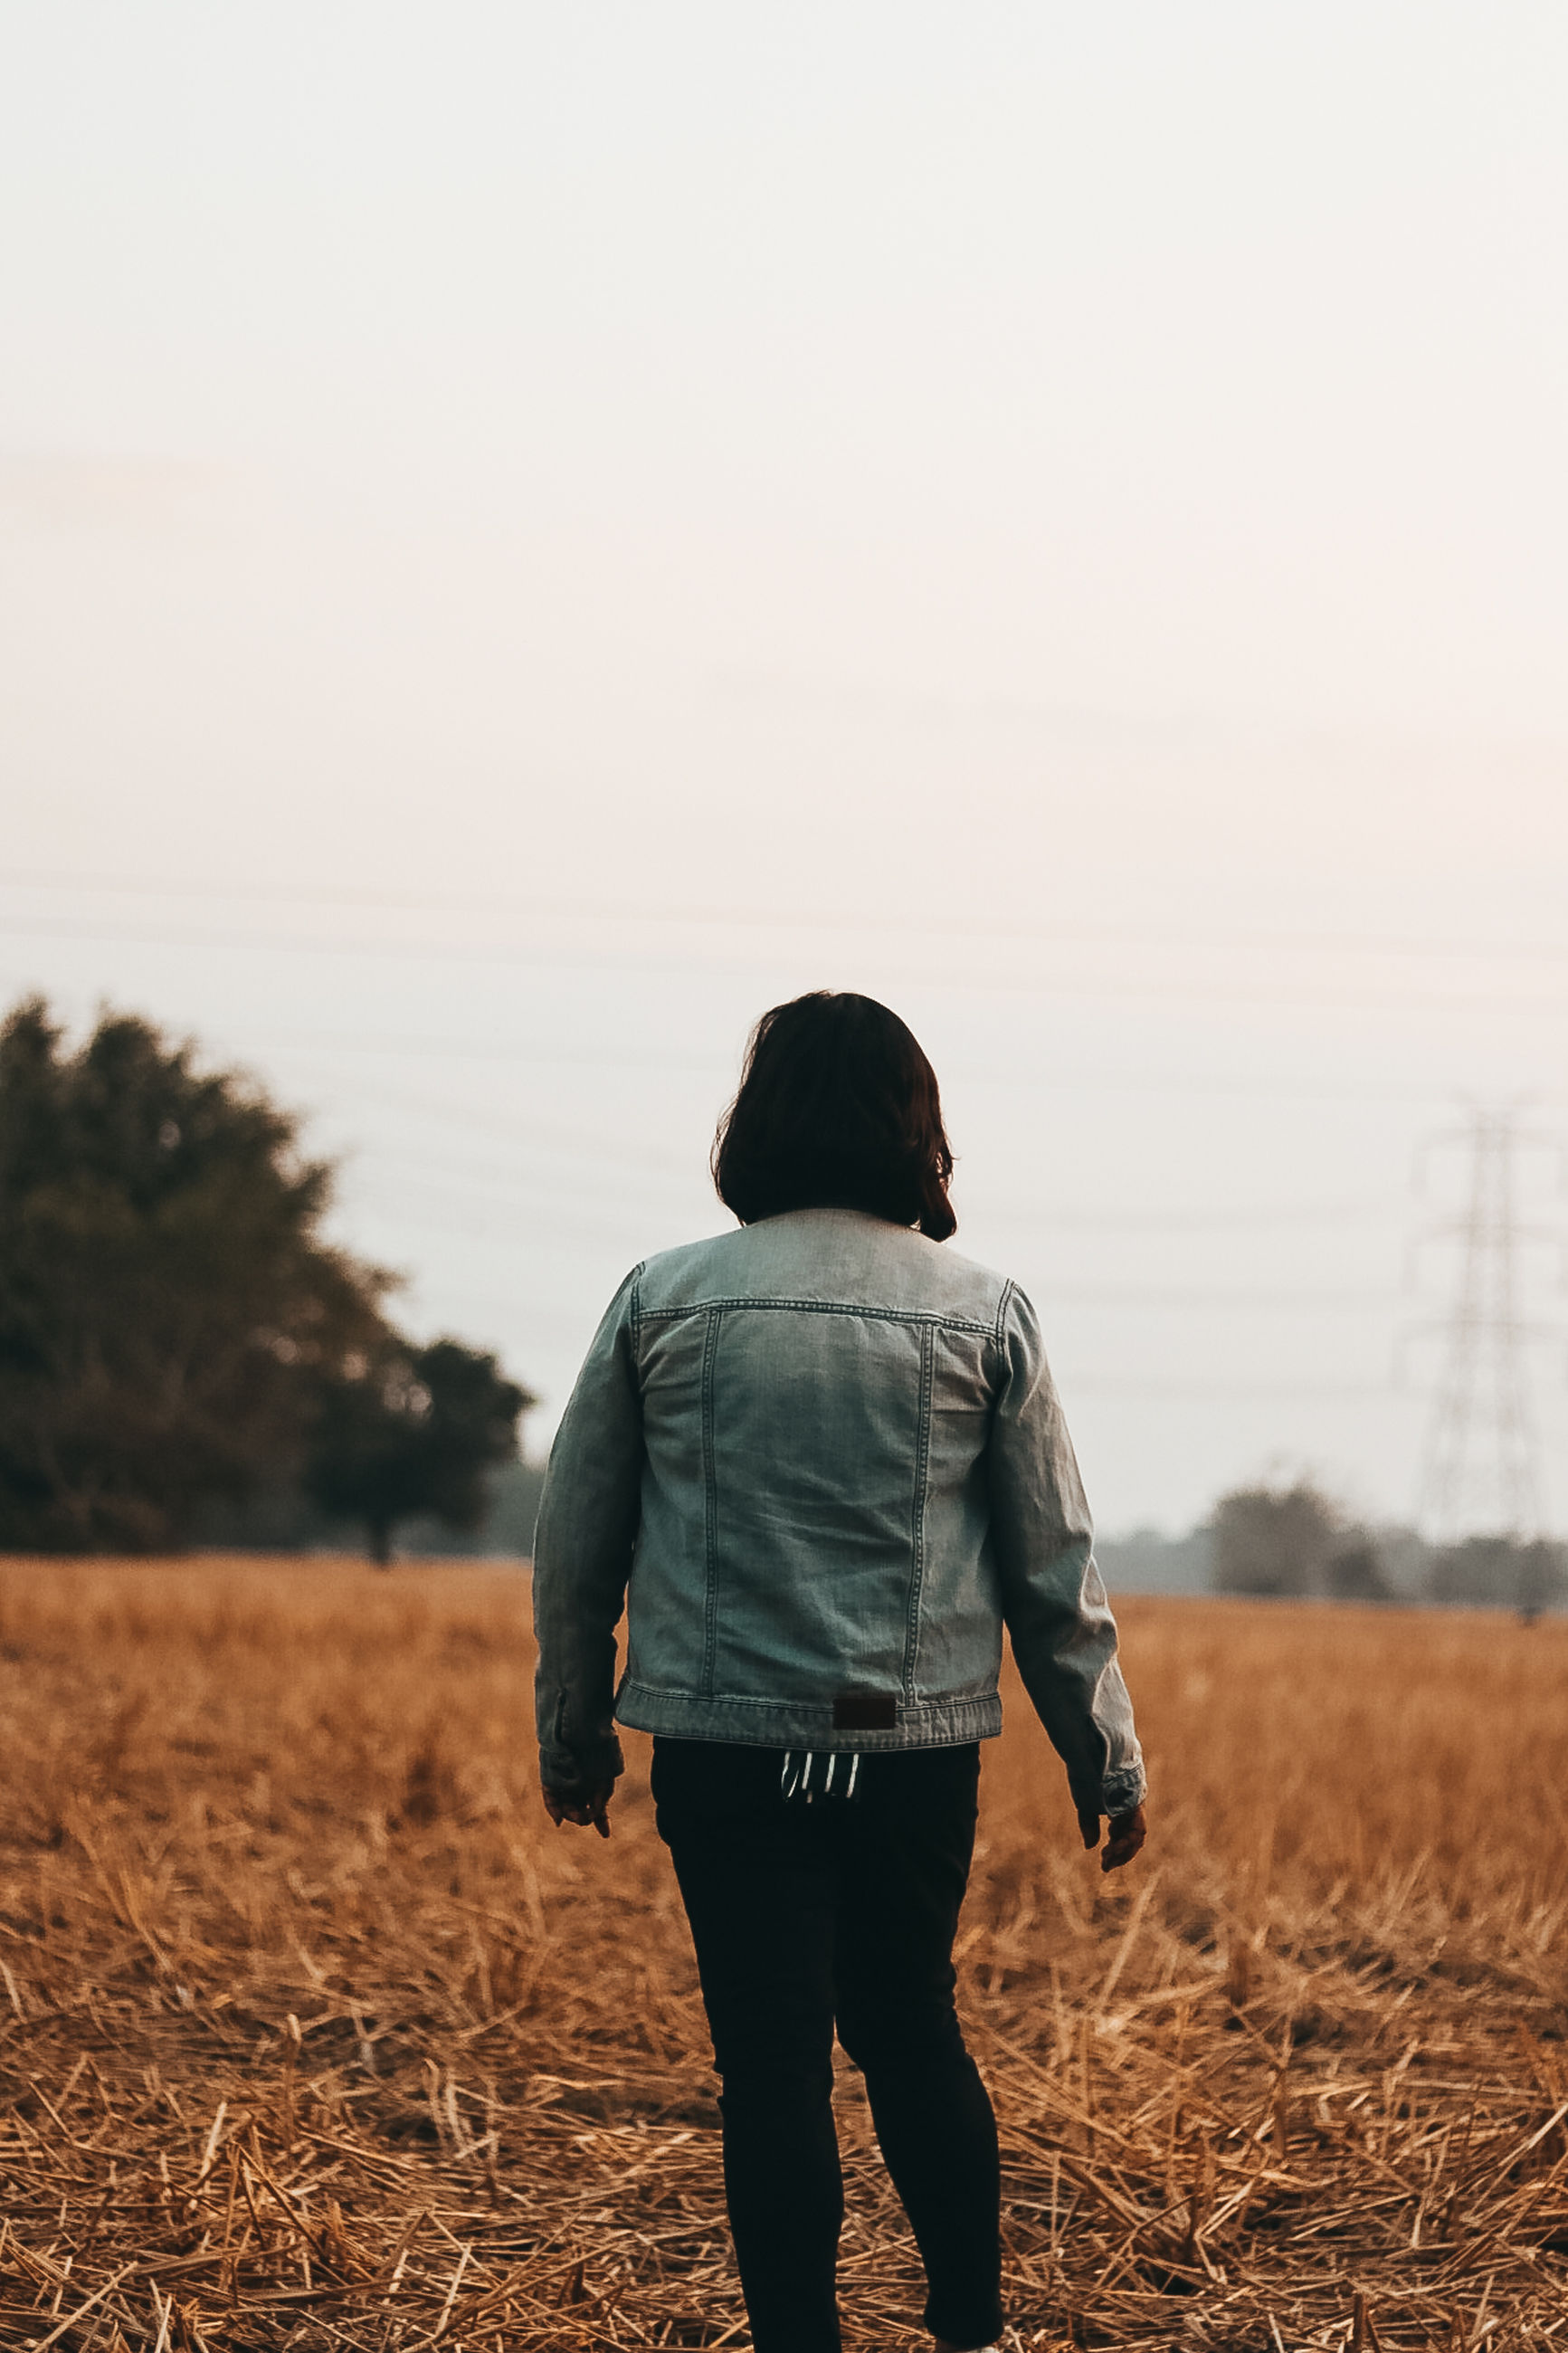 rear view, sky, one person, field, real people, land, lifestyles, leisure activity, nature, standing, casual clothing, three quarter length, clear sky, landscape, adult, women, environment, focus on foreground, walking, hairstyle, outdoors